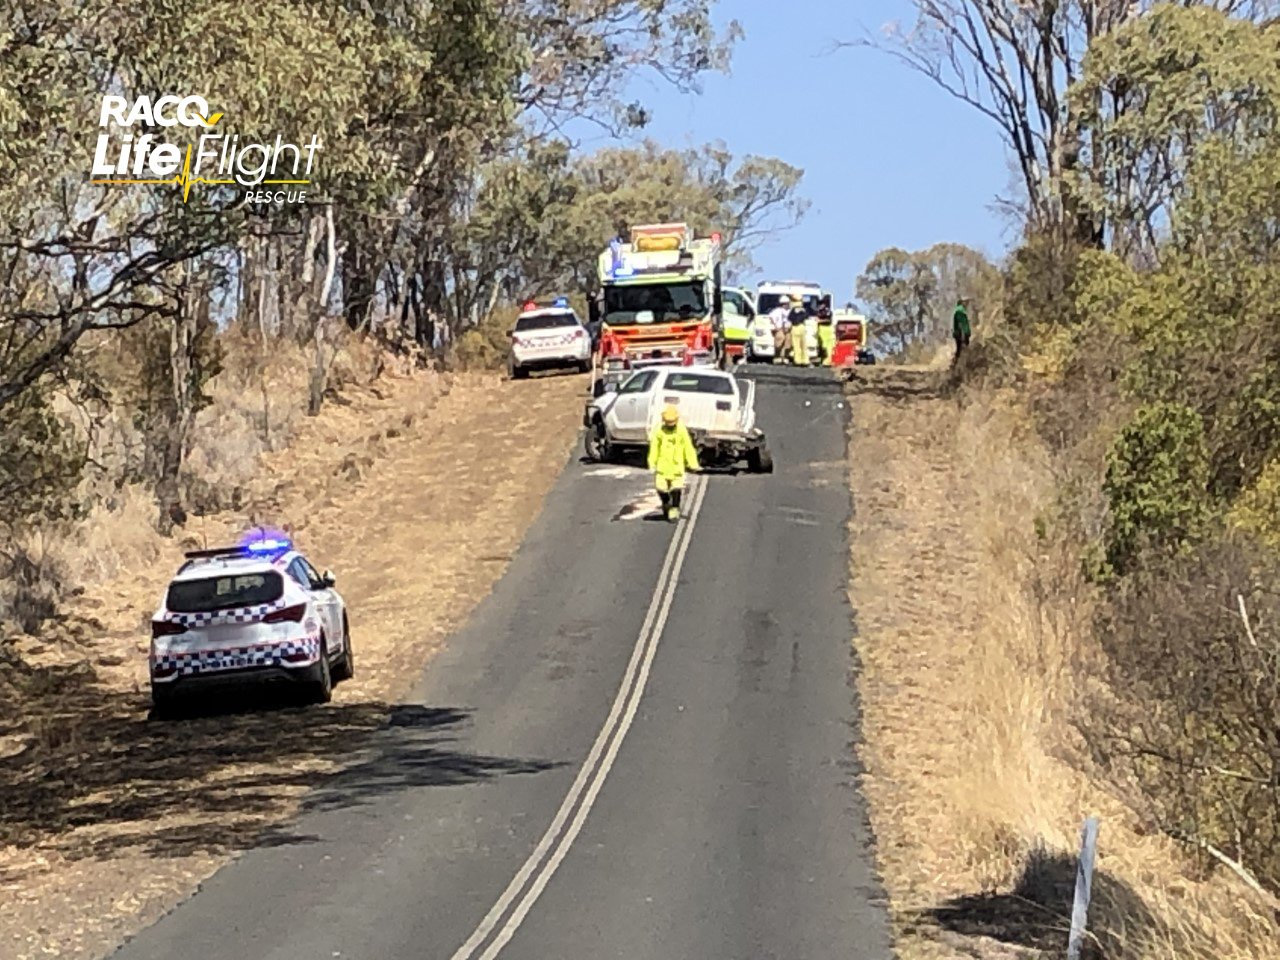 The Toowoomba LifeFlight Surat Gas Aeromedical Service (SGAS) Rescue helicopter airlifted a teenage driver, after his car collided with another, north west of Toowoomba, early this morning. (Sat 16th)